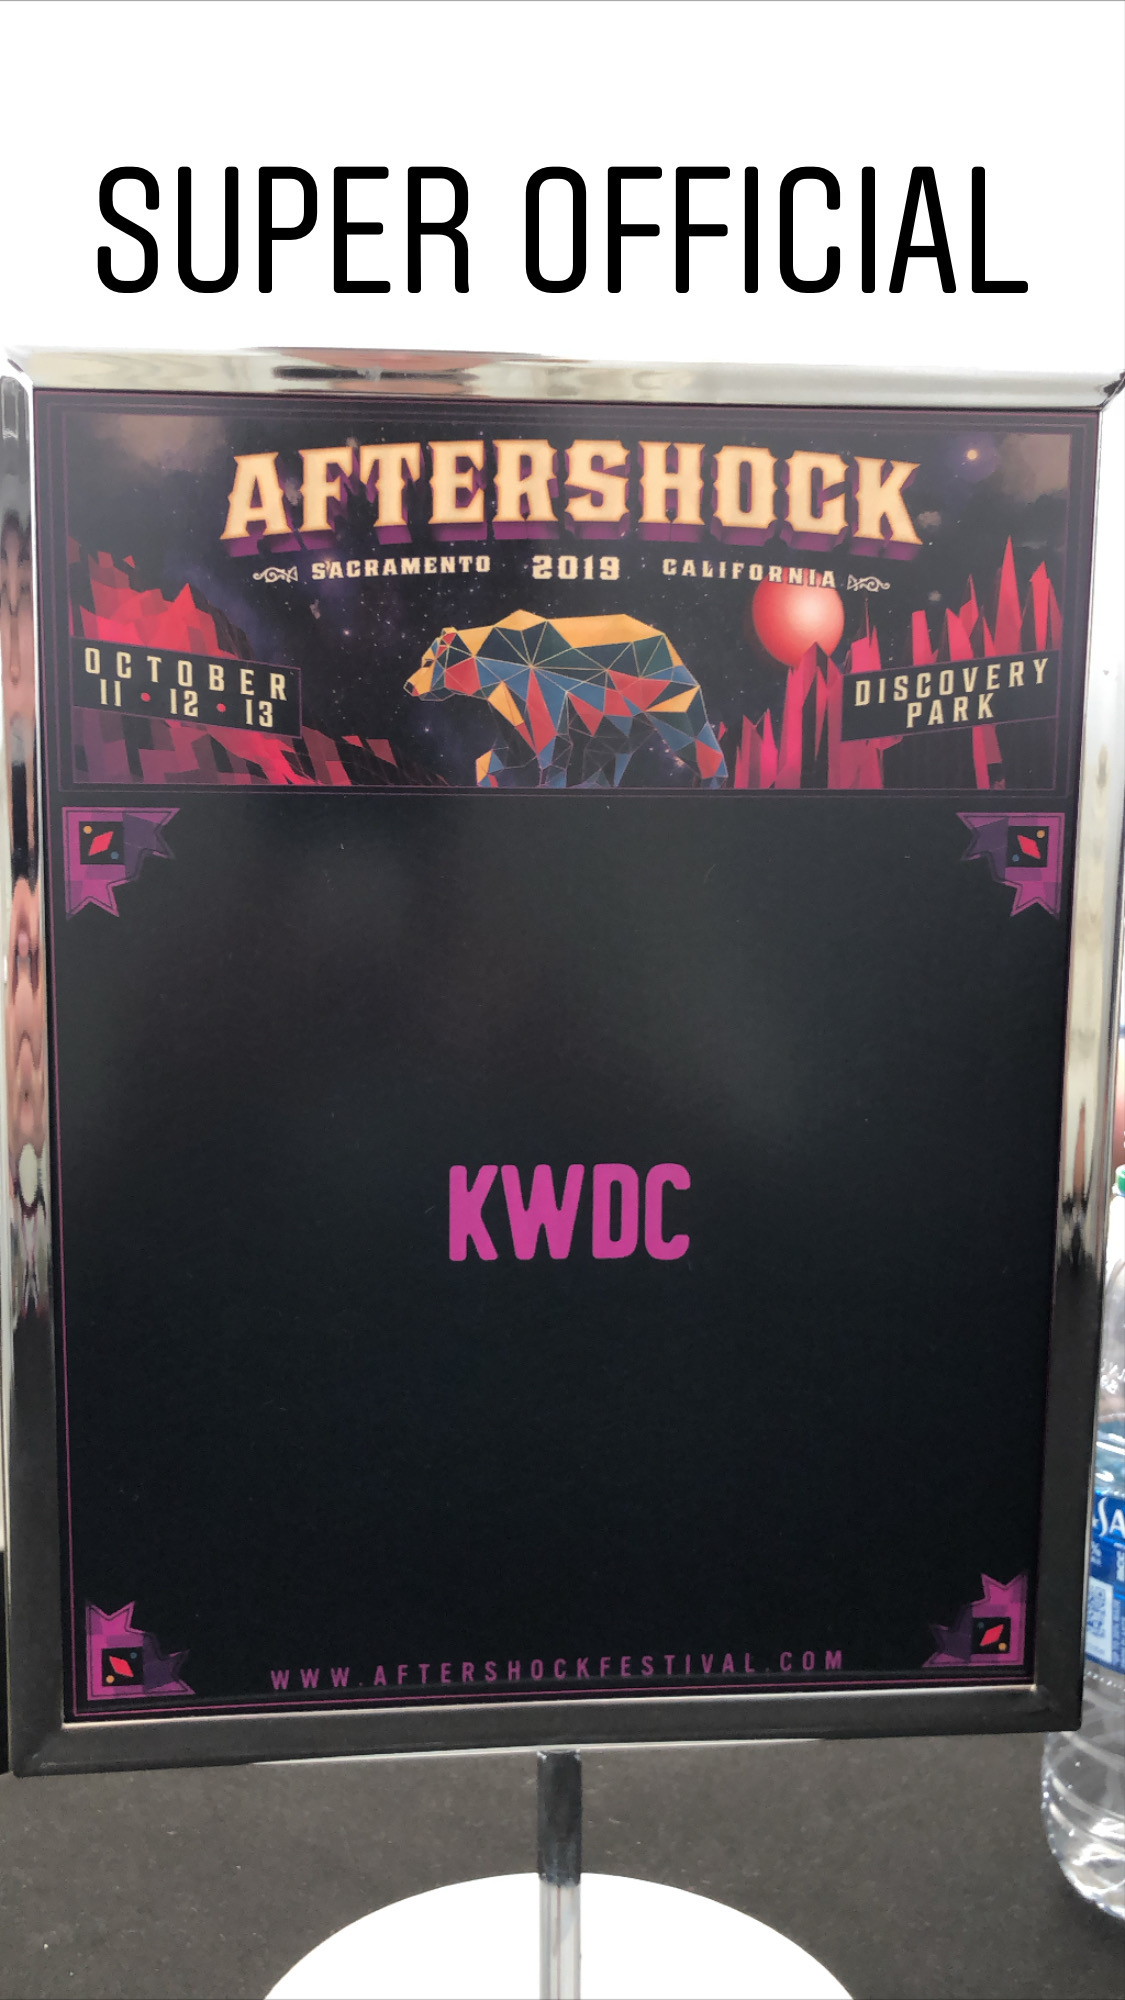 KWDC at Aftershock Festival